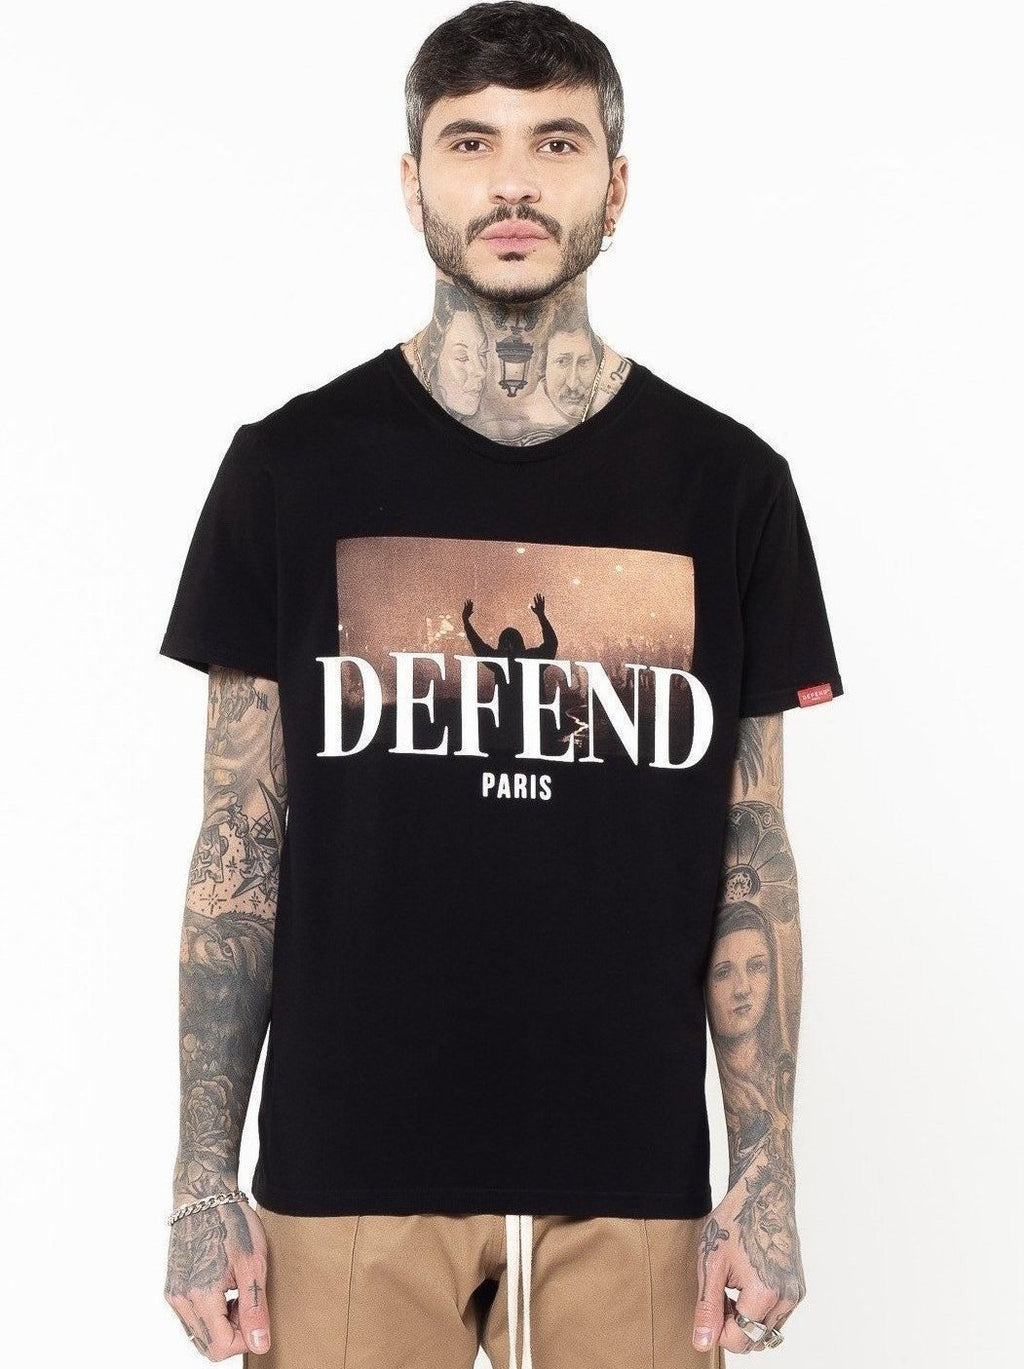 Defend Paris Attack Tee - This Is For Him